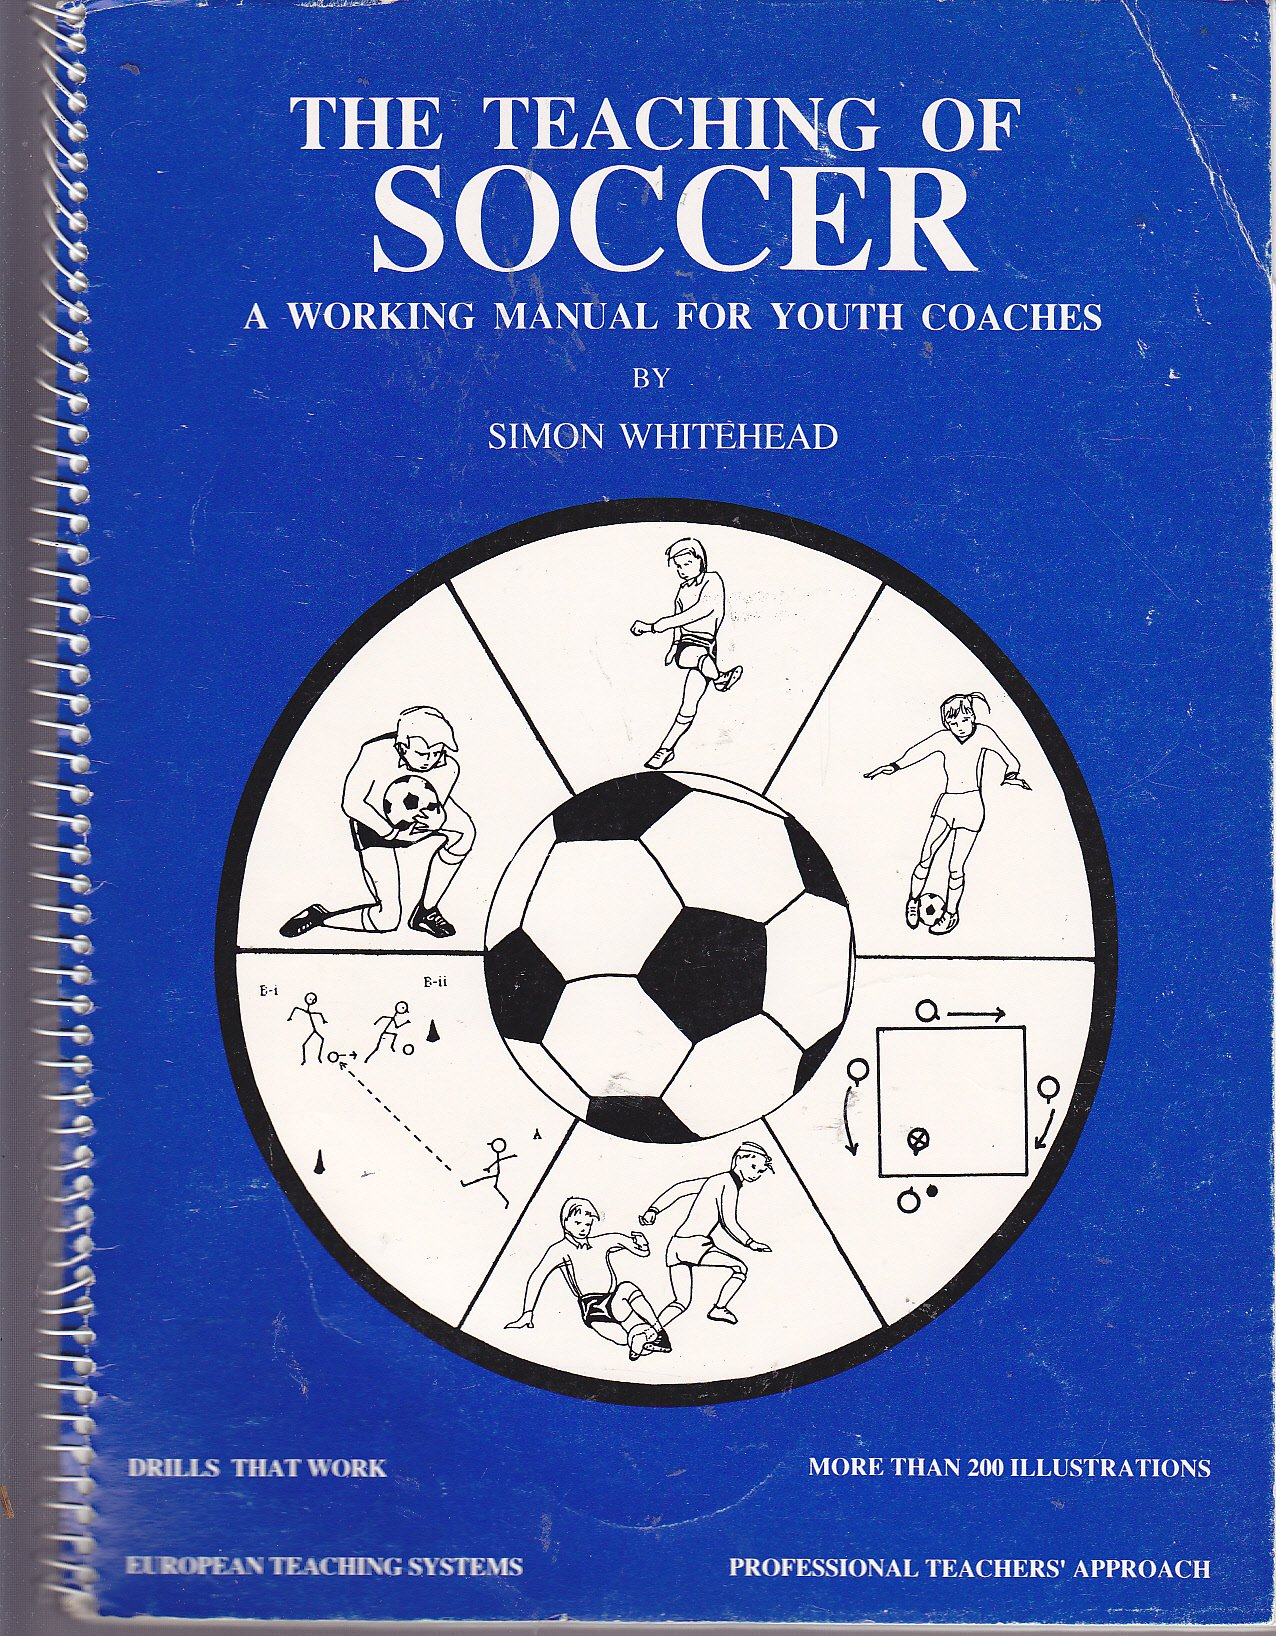 The teaching of soccer: A working manual for youth coaches